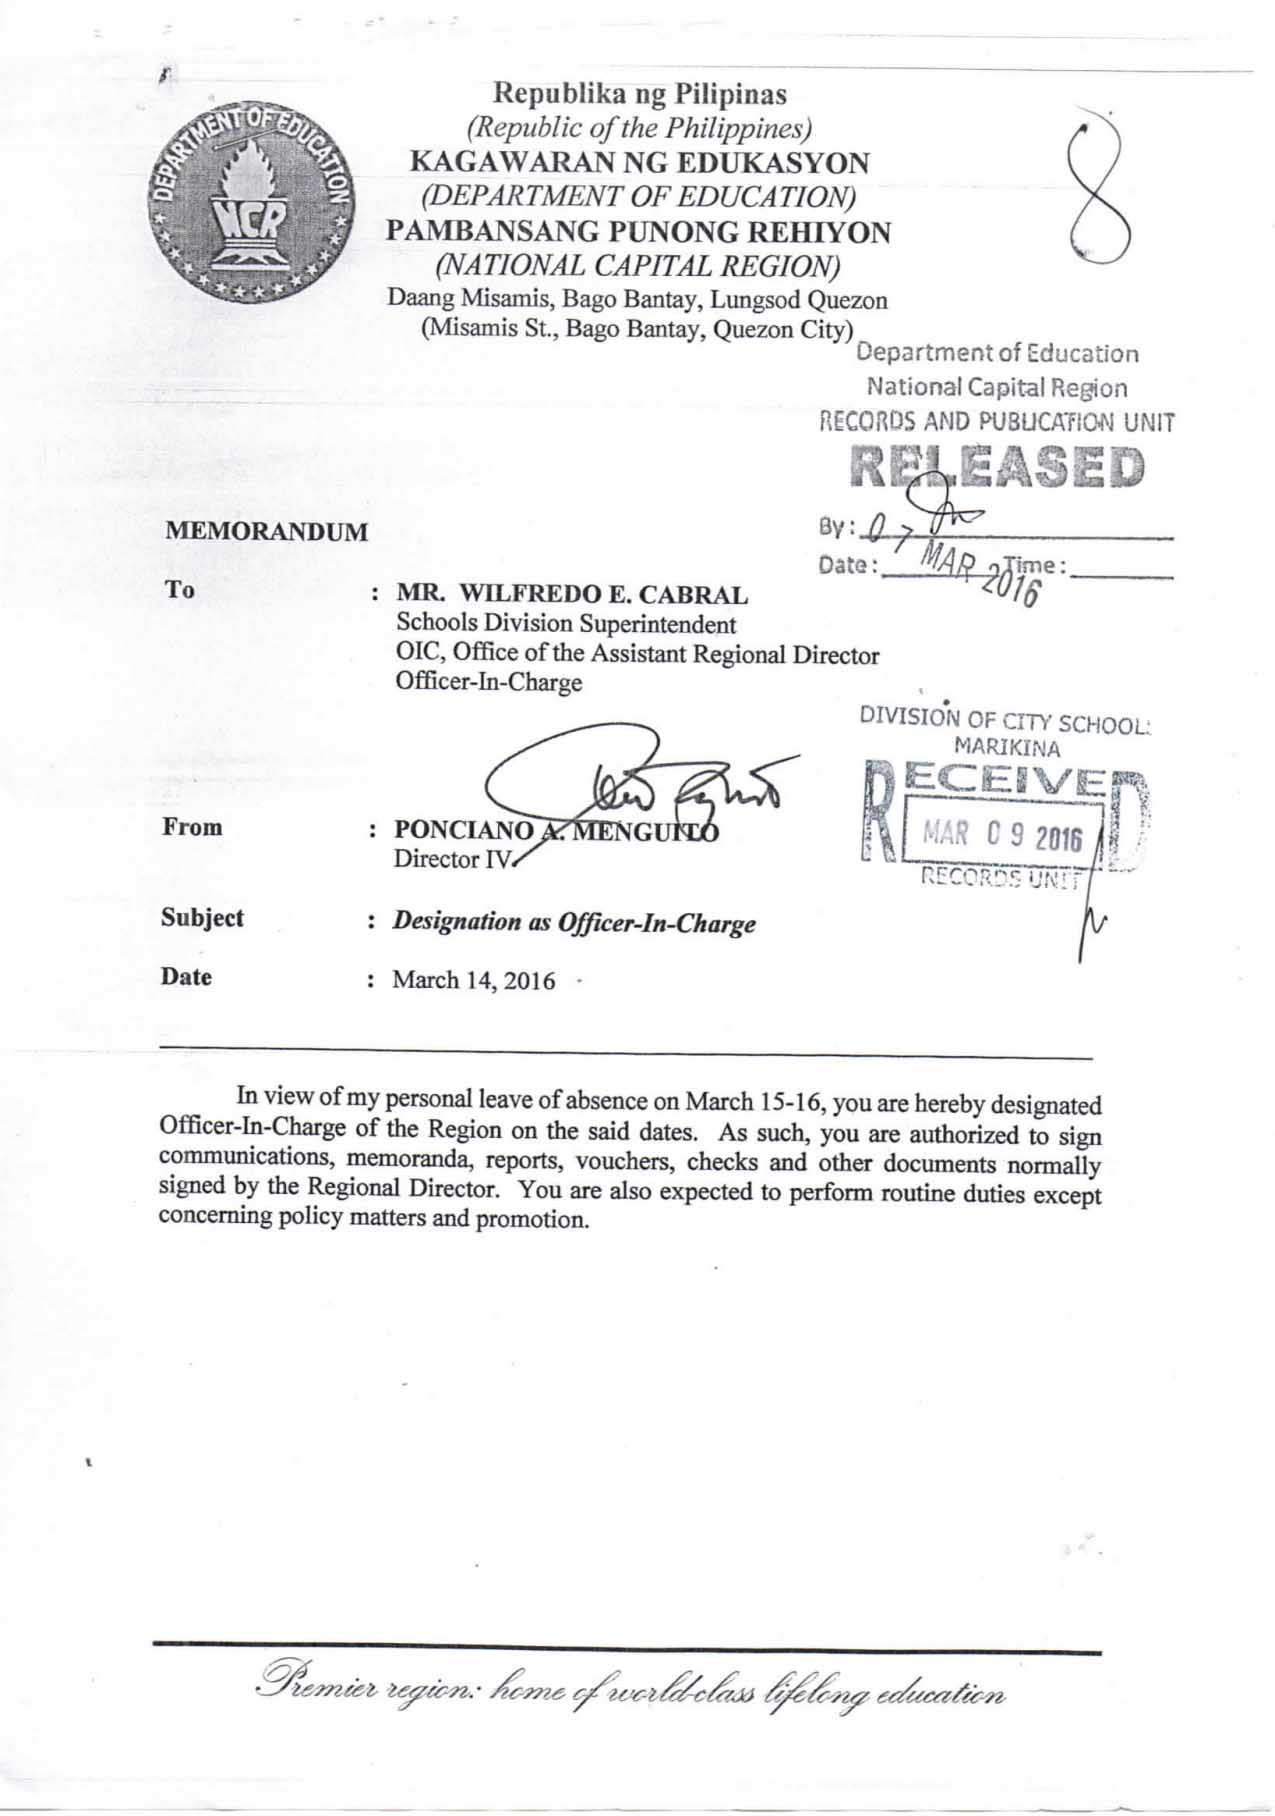 Designation of Mr. Wilfredo E. Cabral as OIC